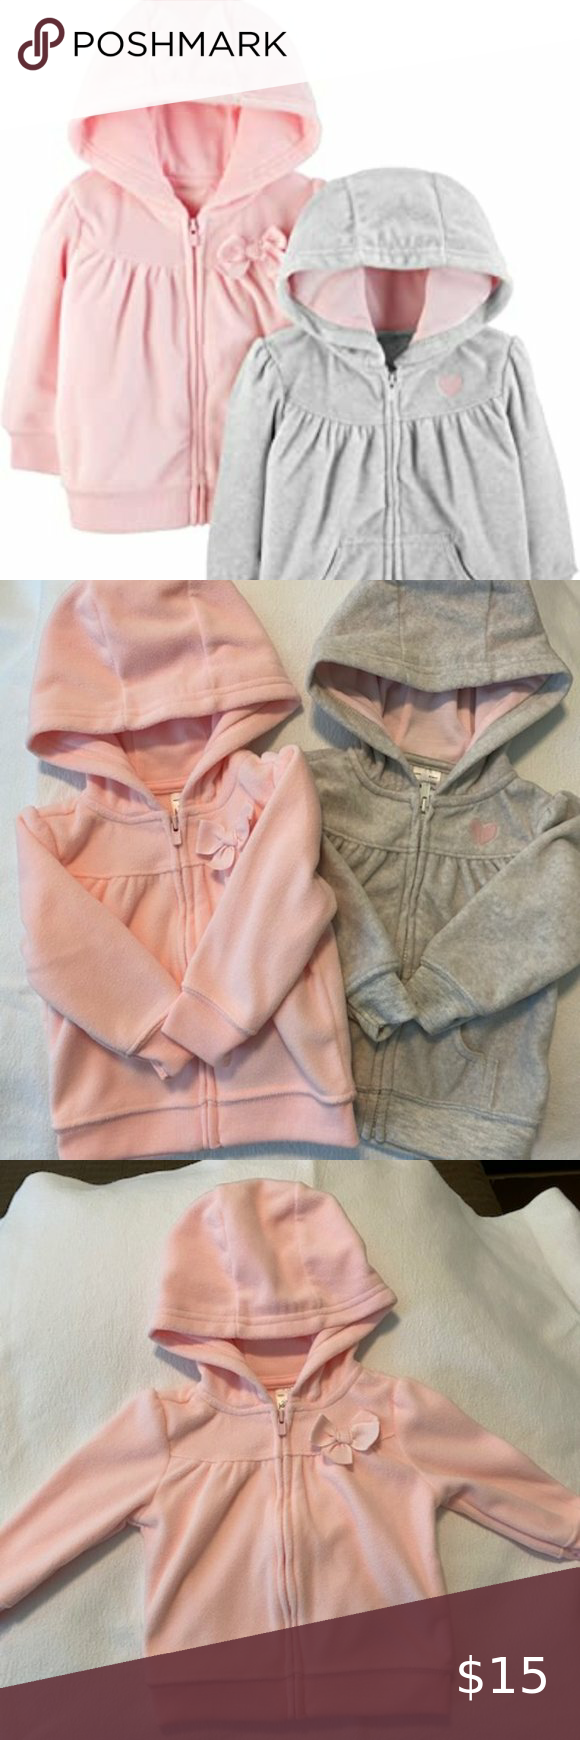 Simple Joys by Carters Baby Girls 2-Pack Fleece Full Zip Hoodies